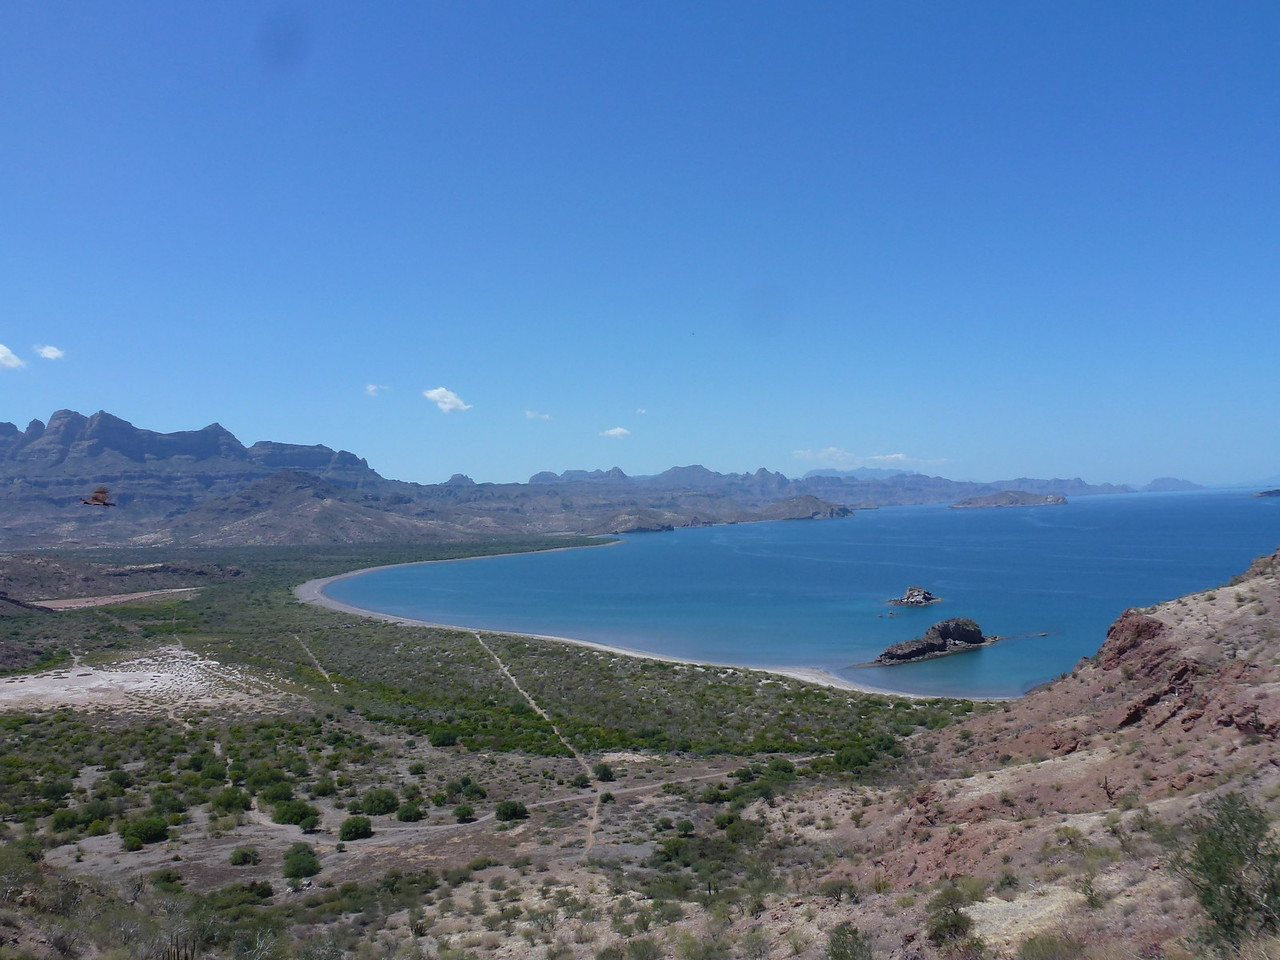 Sea of Cortez with Sierras in the back ground